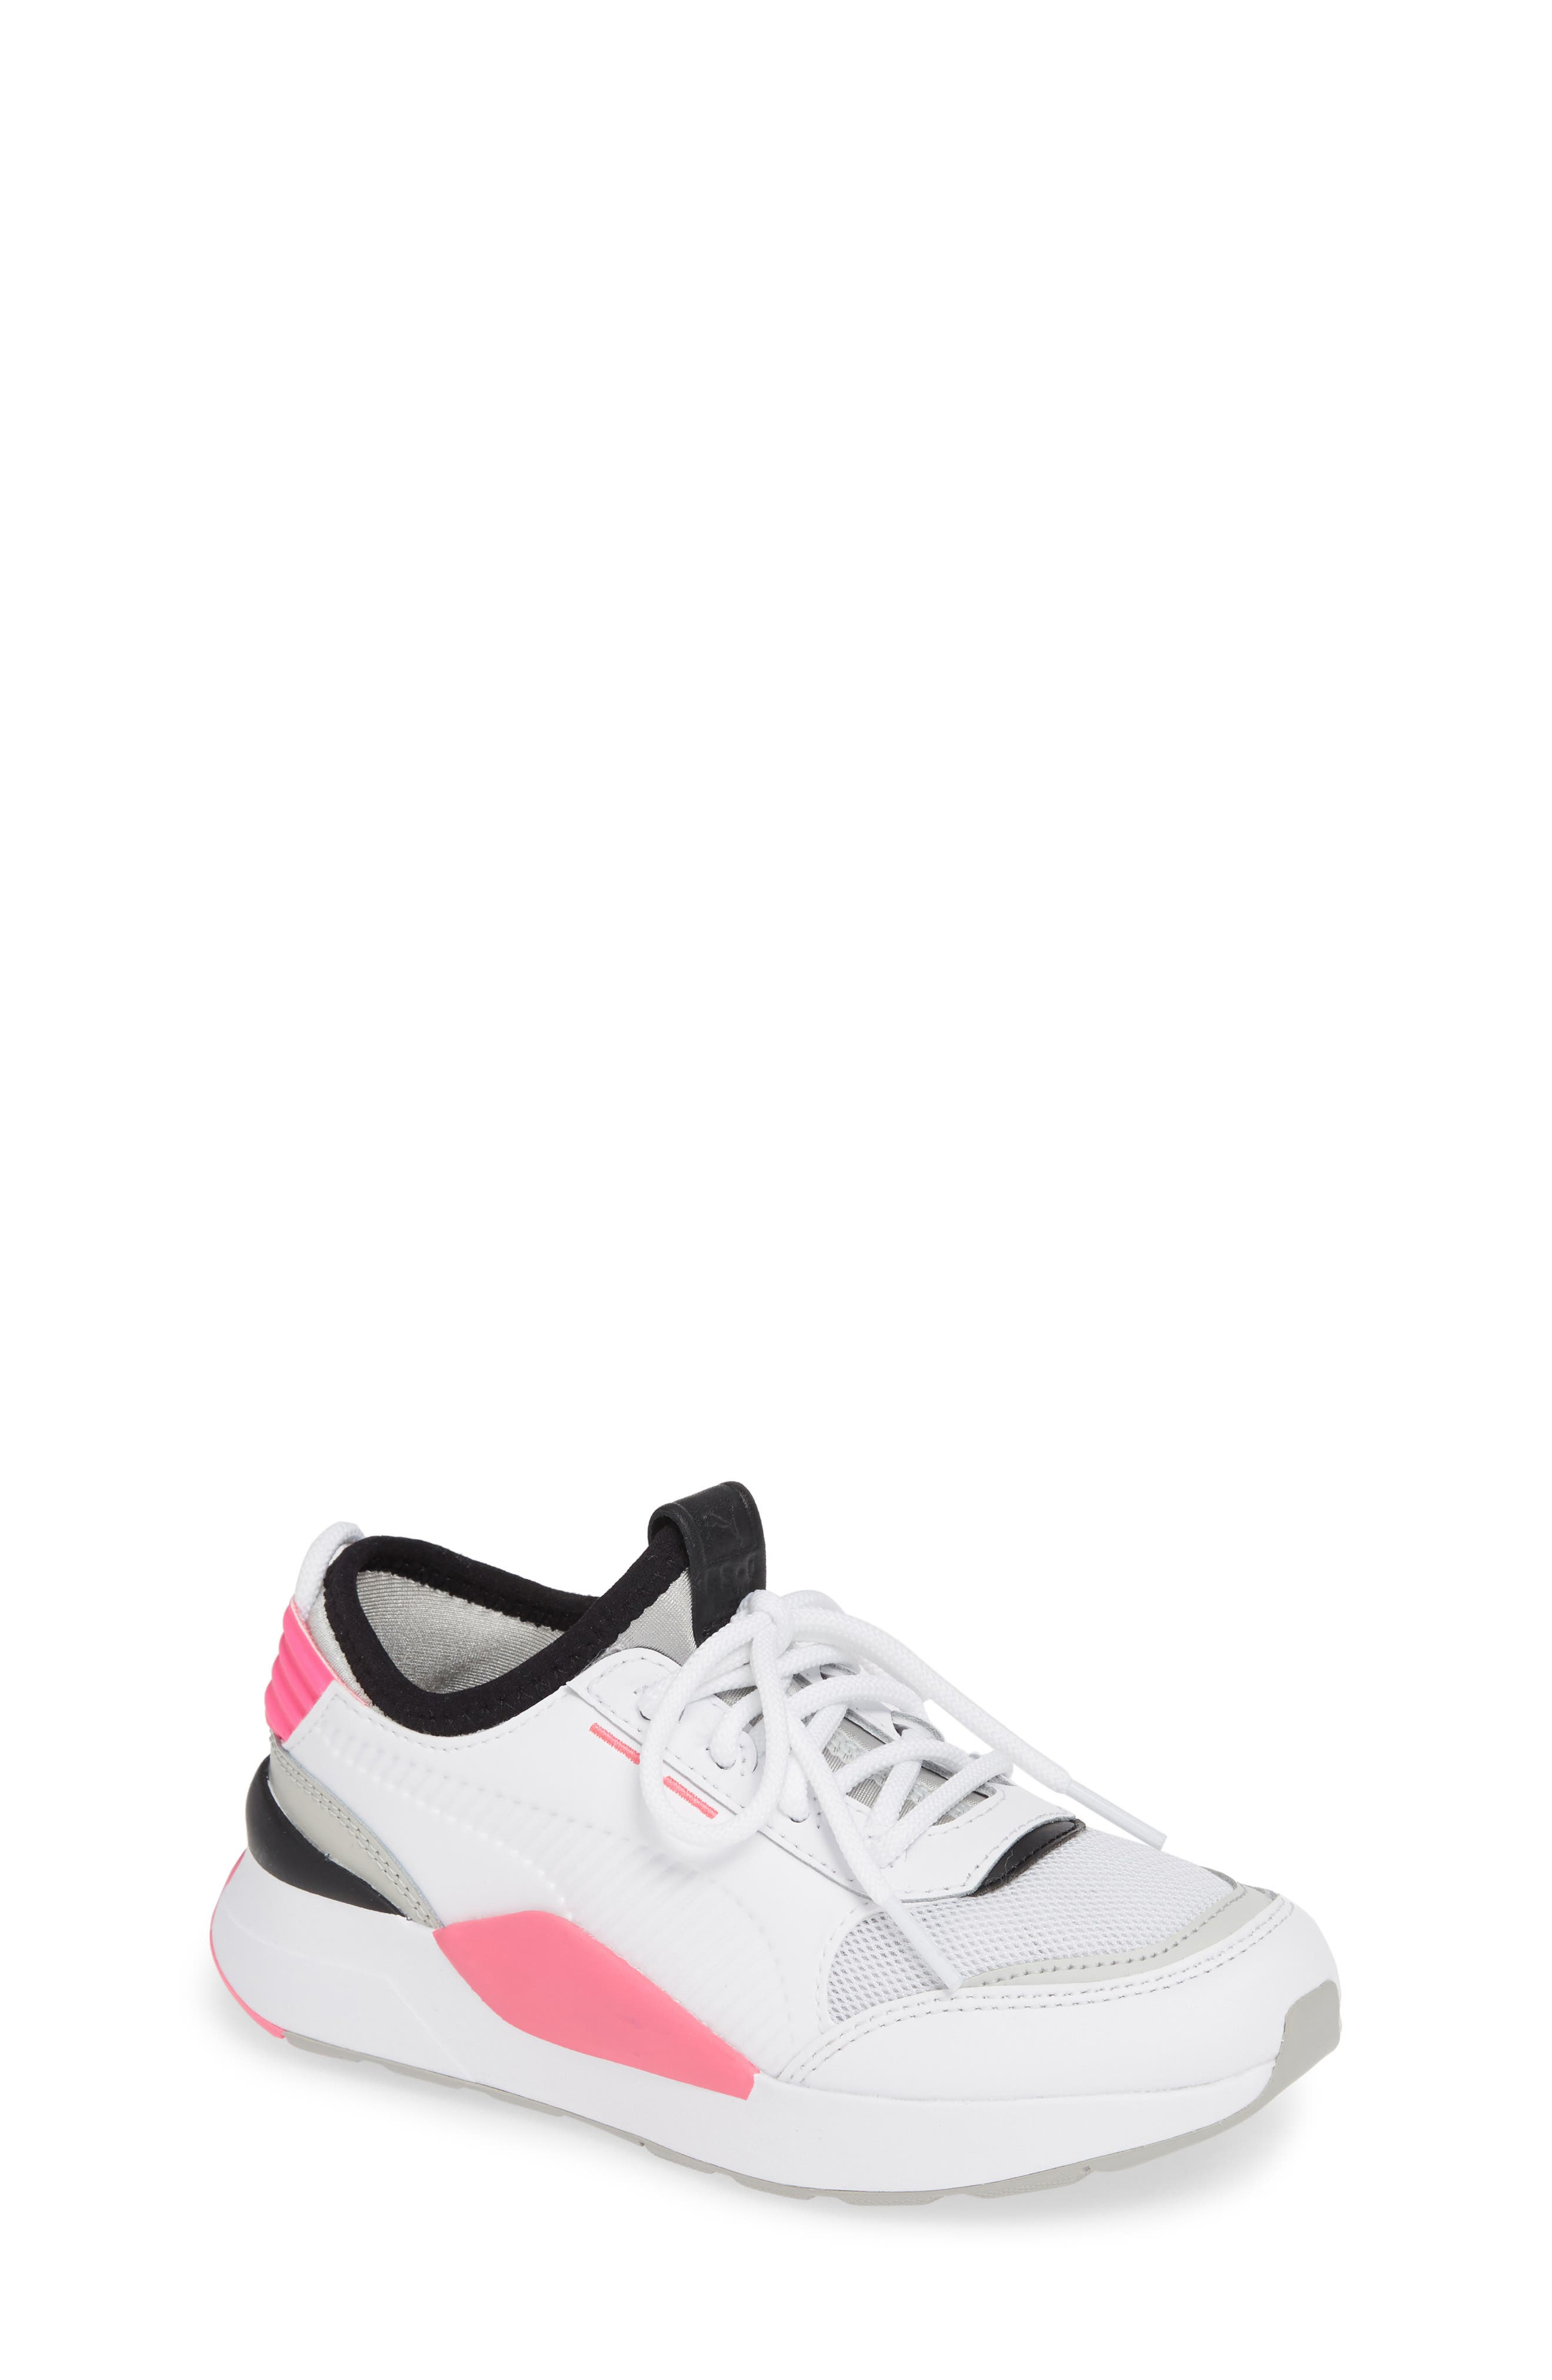 RS-0 Play Sneaker,                         Main,                         color, 101